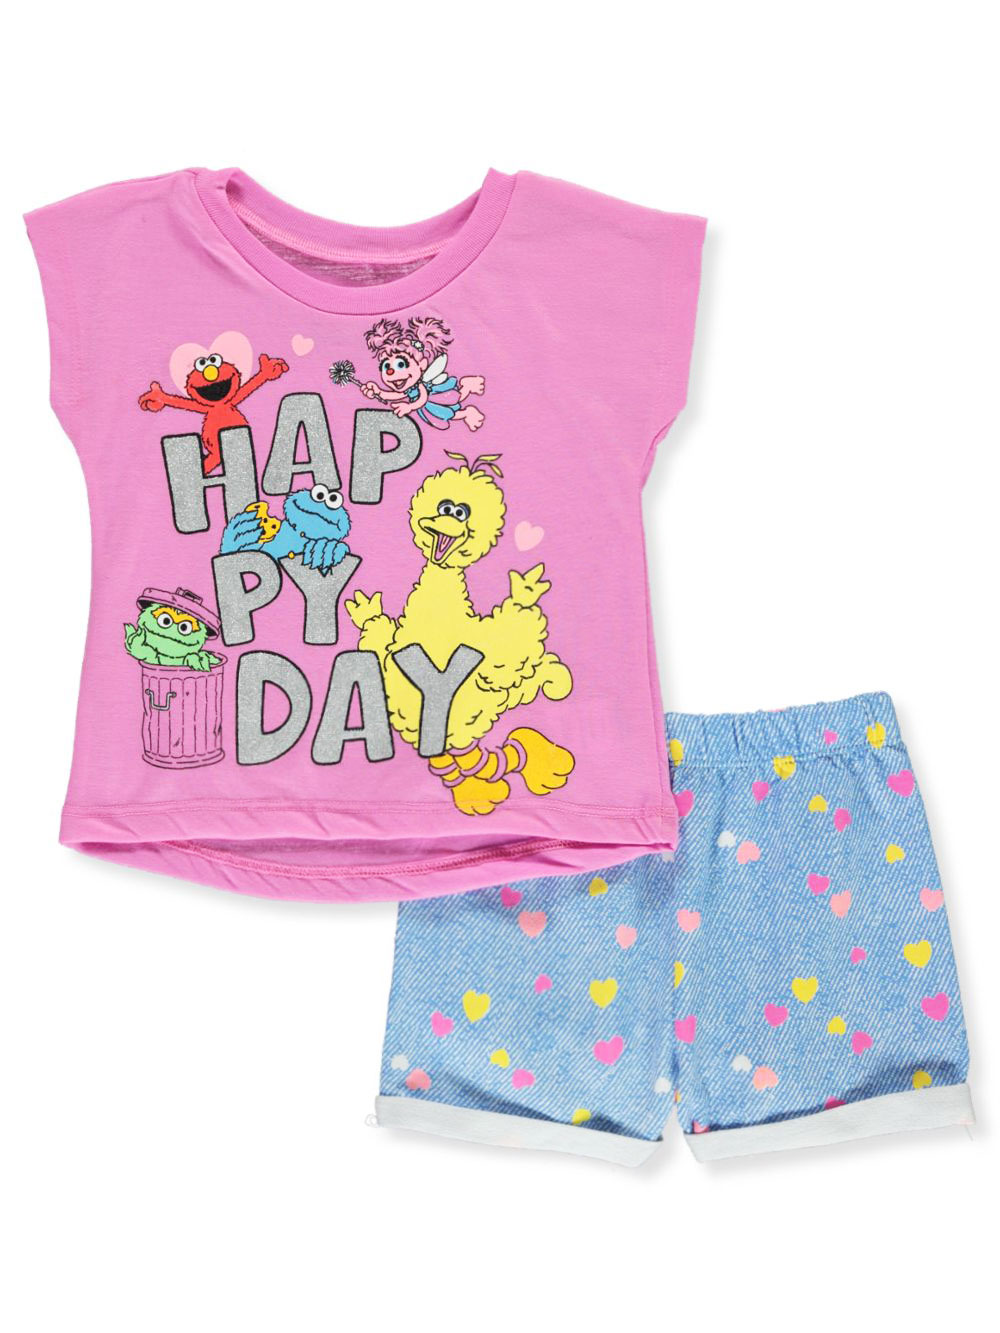 Happy Day 2-Piece Shorts Set Outfit